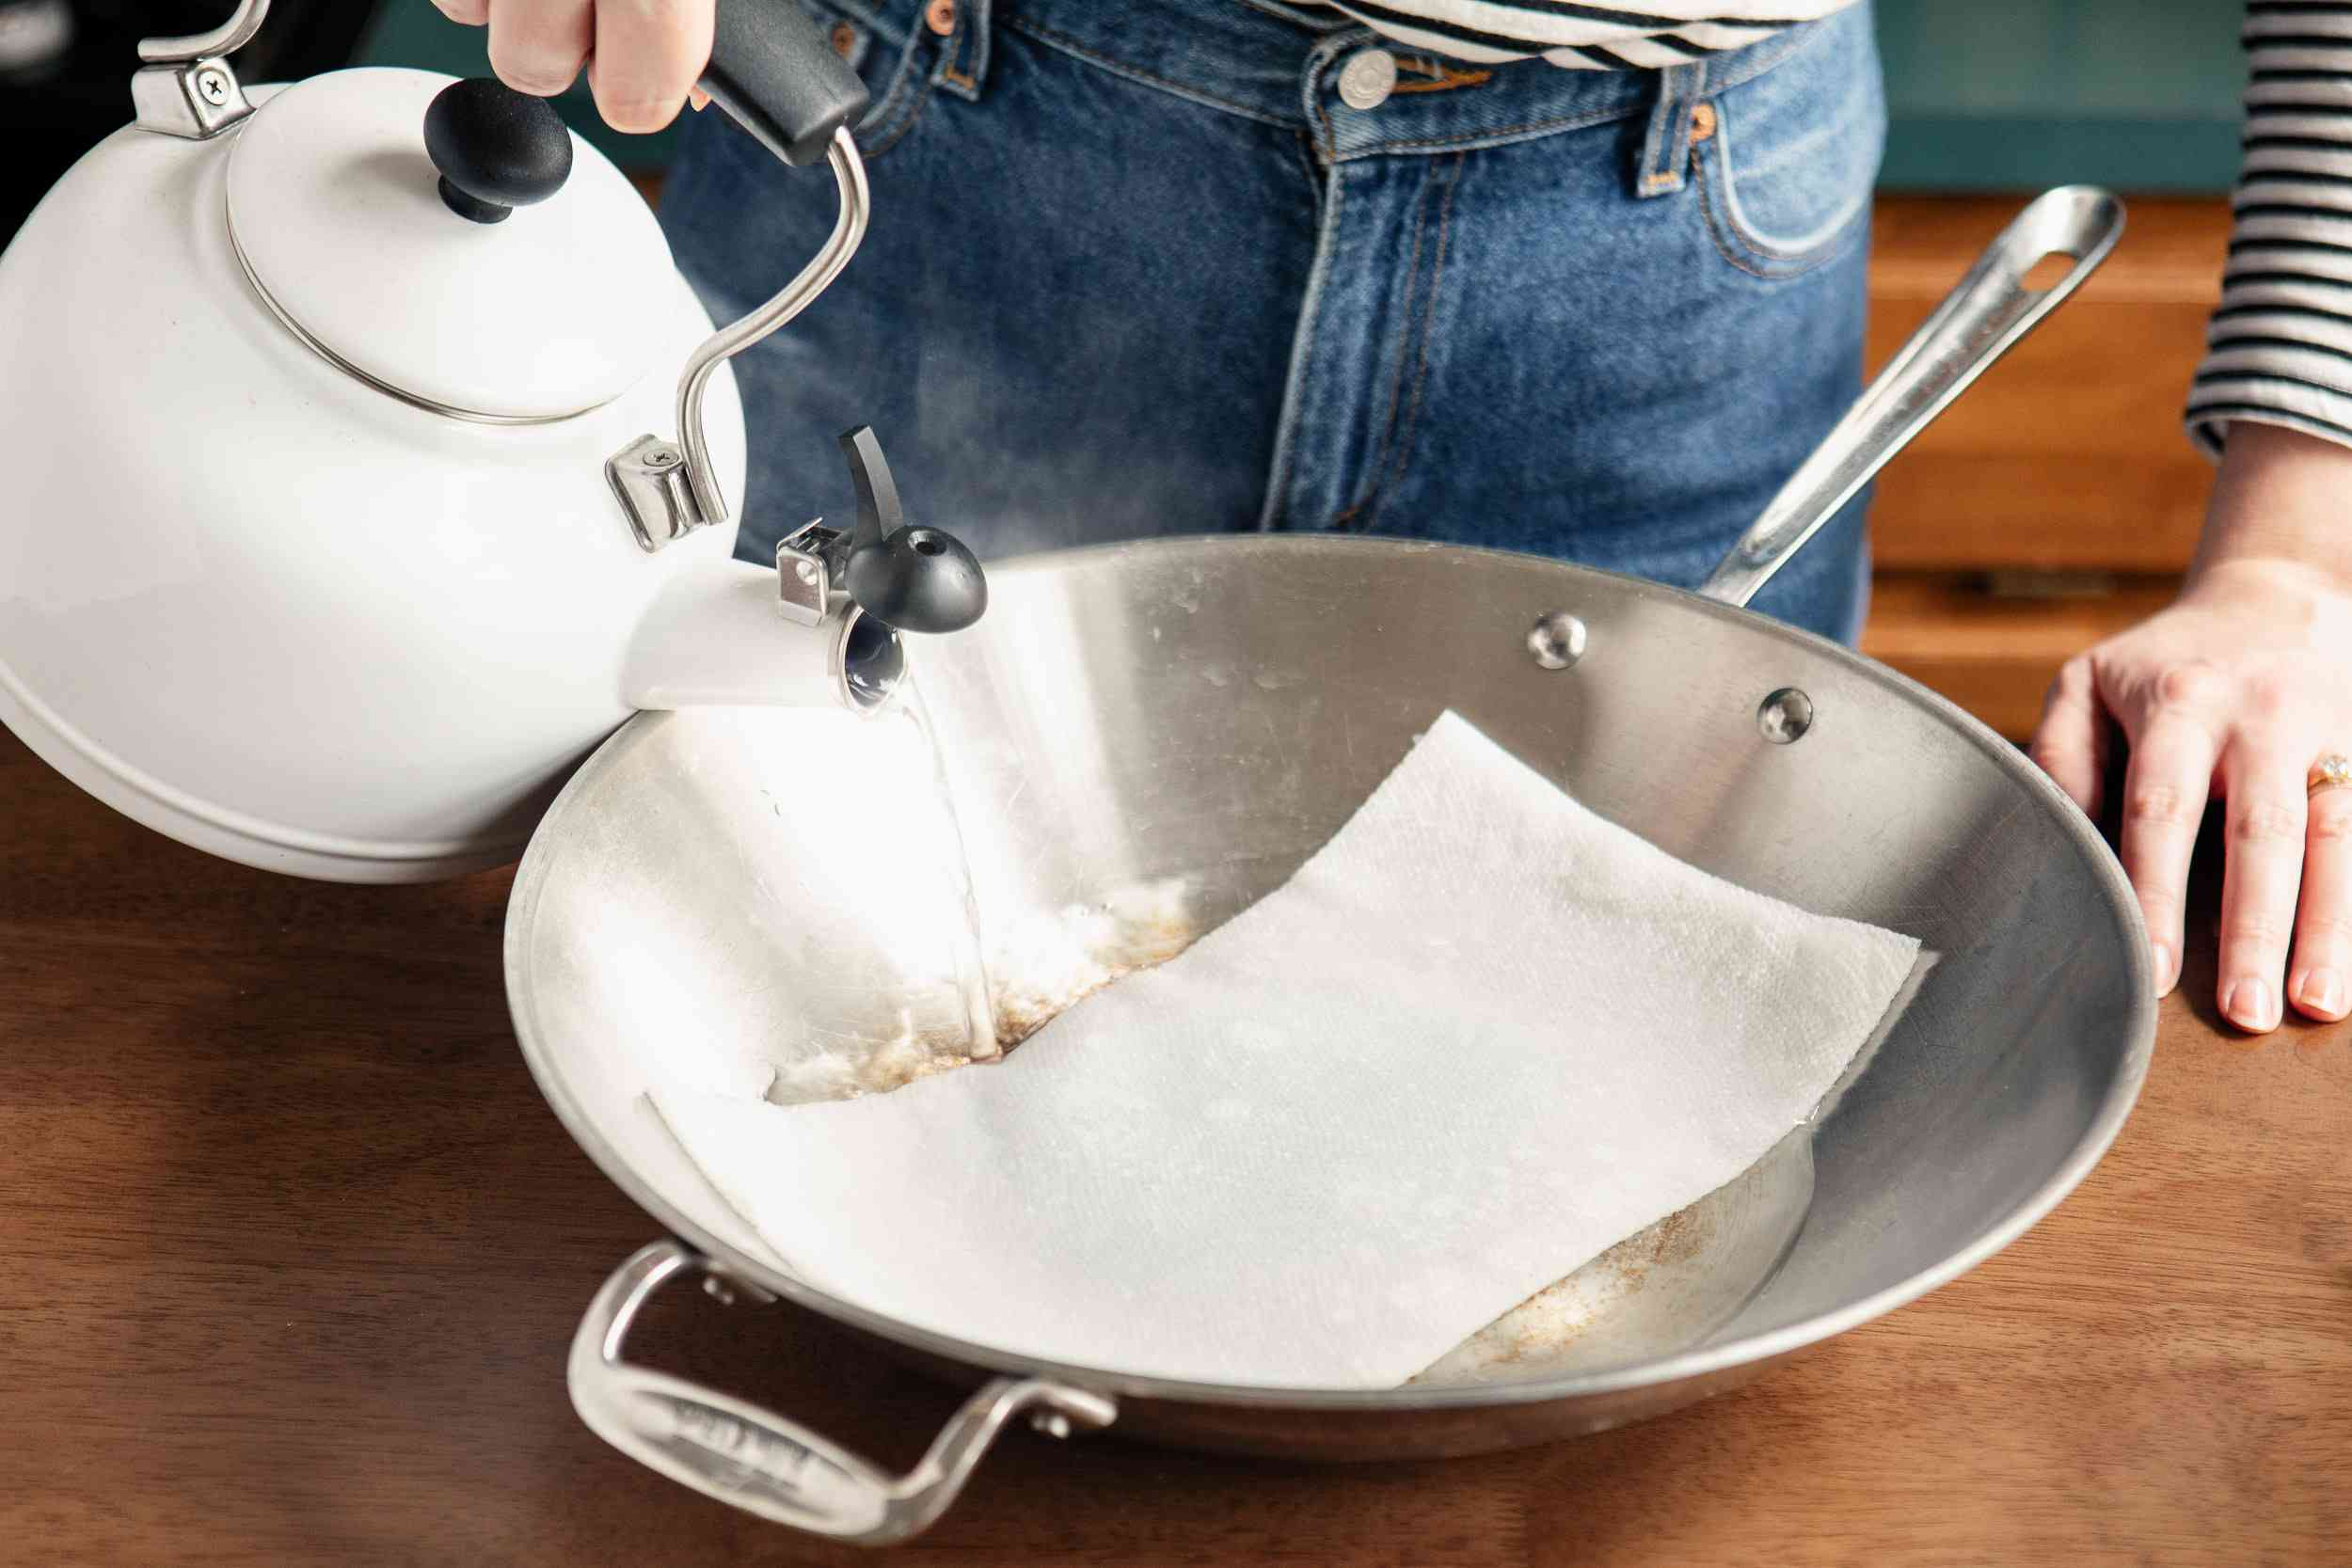 pouring boiling water on the towel